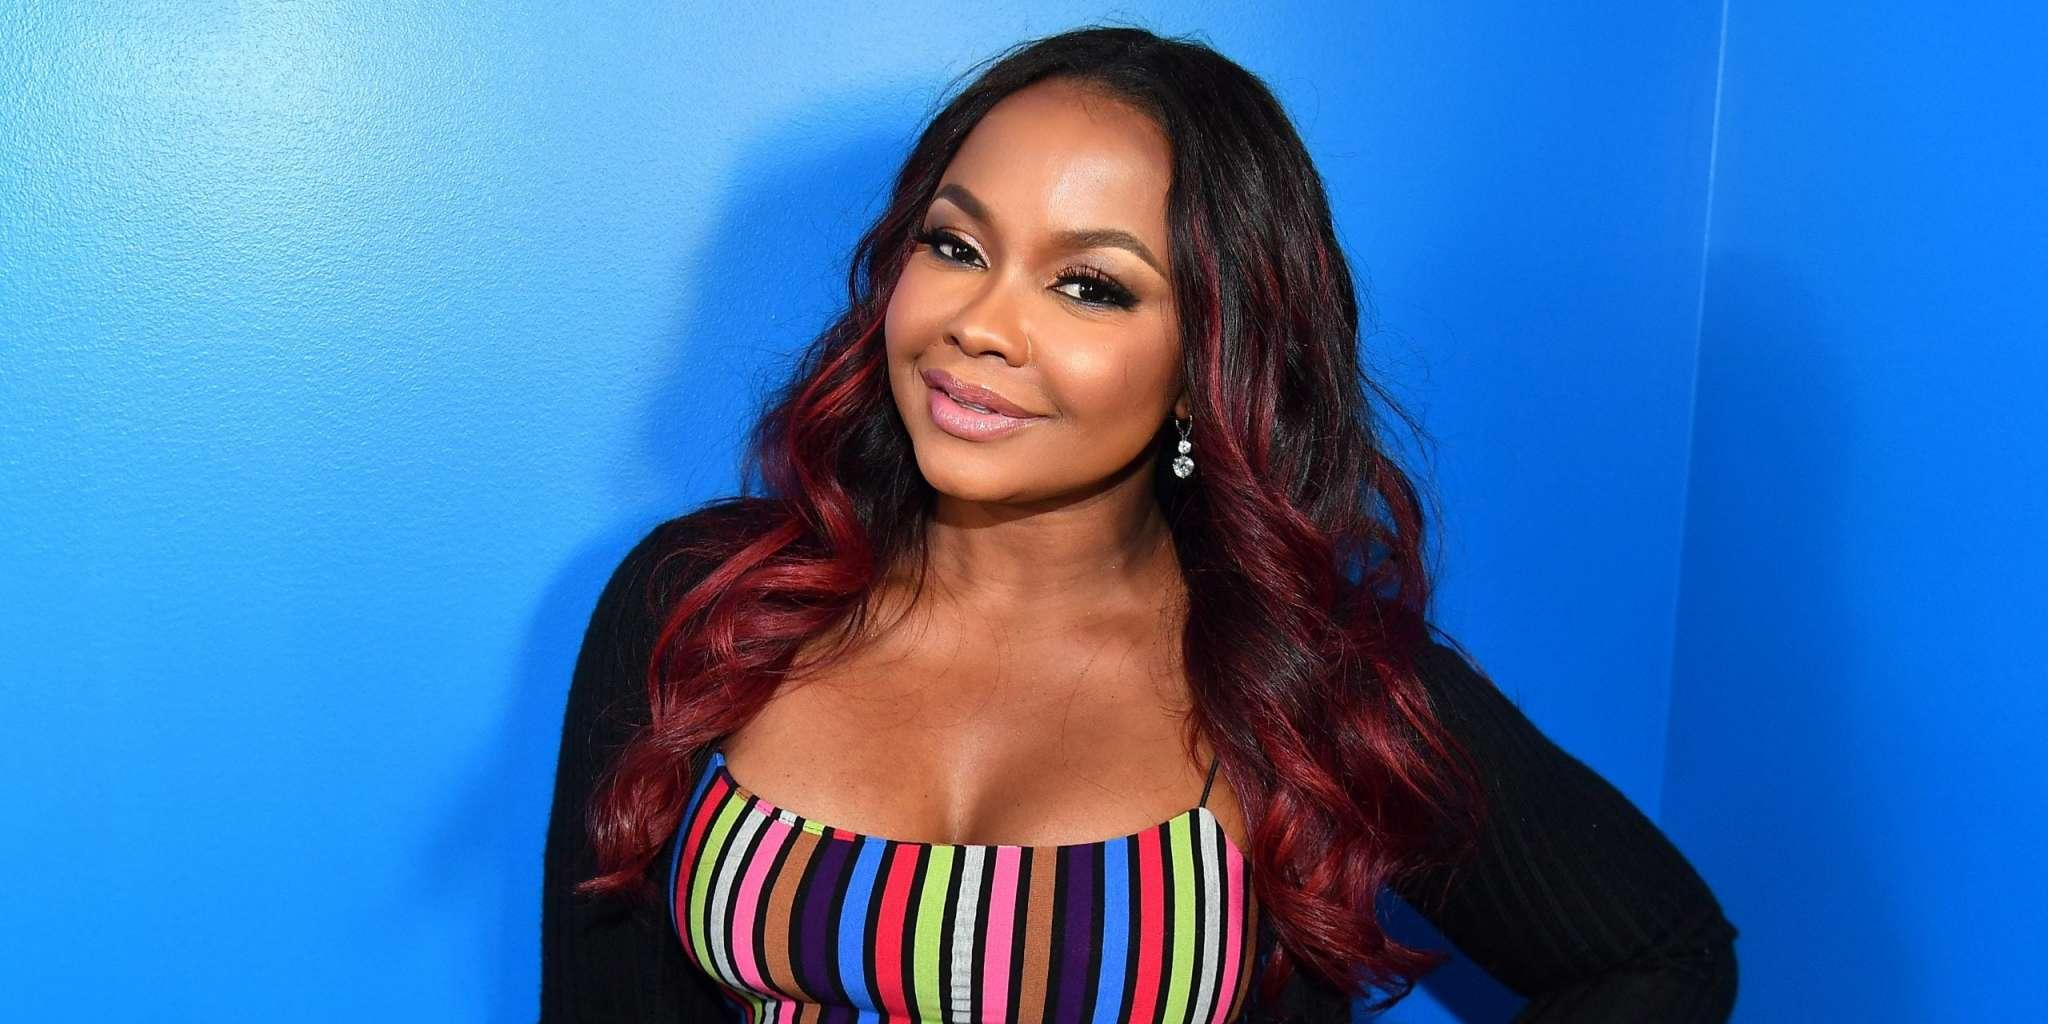 Phaedra Parks Wishes A Happy Birthday To Her BFF - See Their Pics To Mark This Event